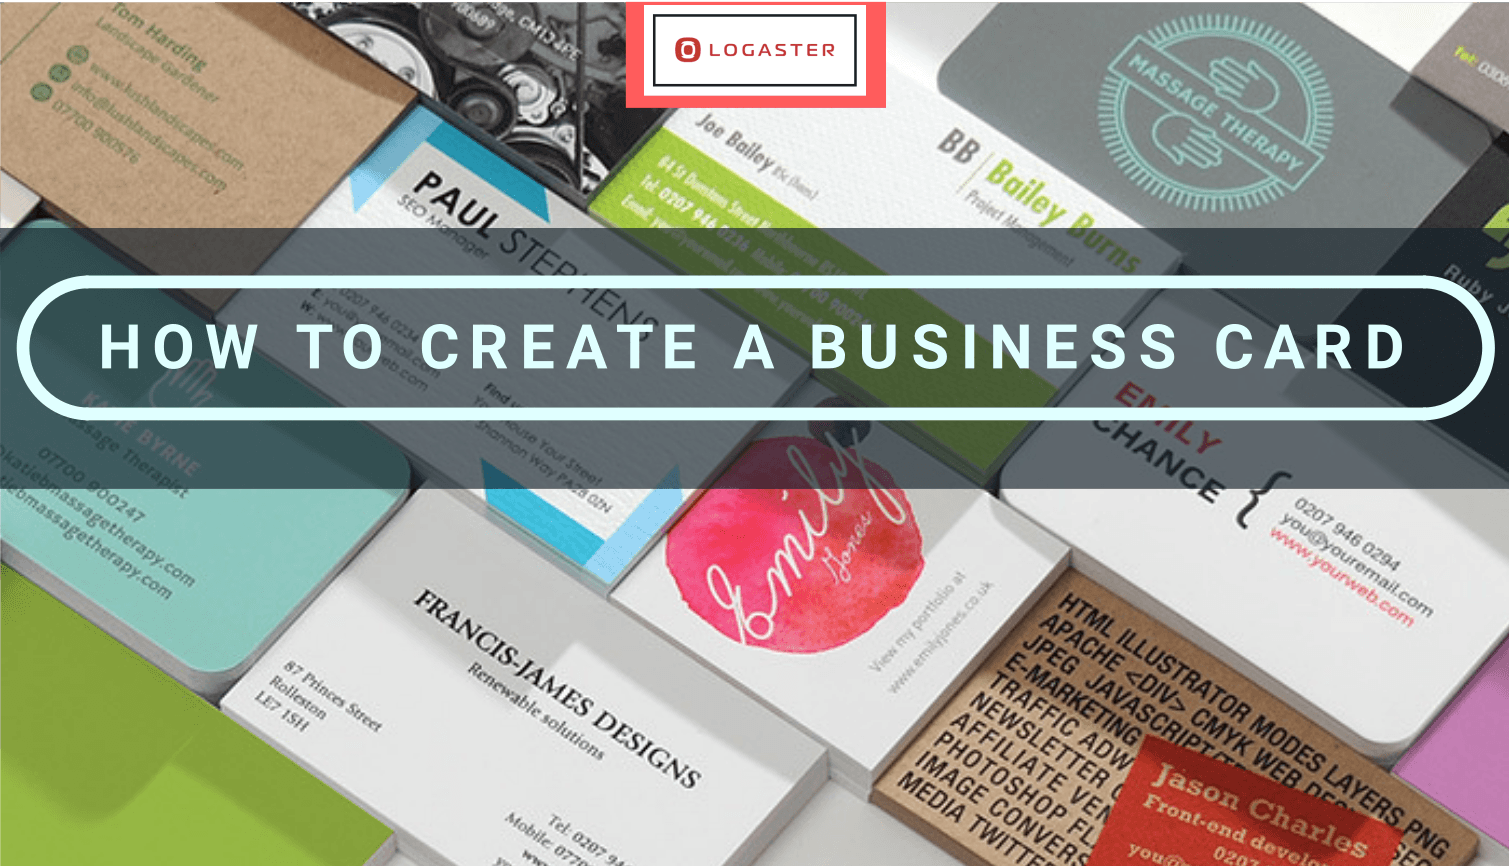 How to Make a Business Card online?.